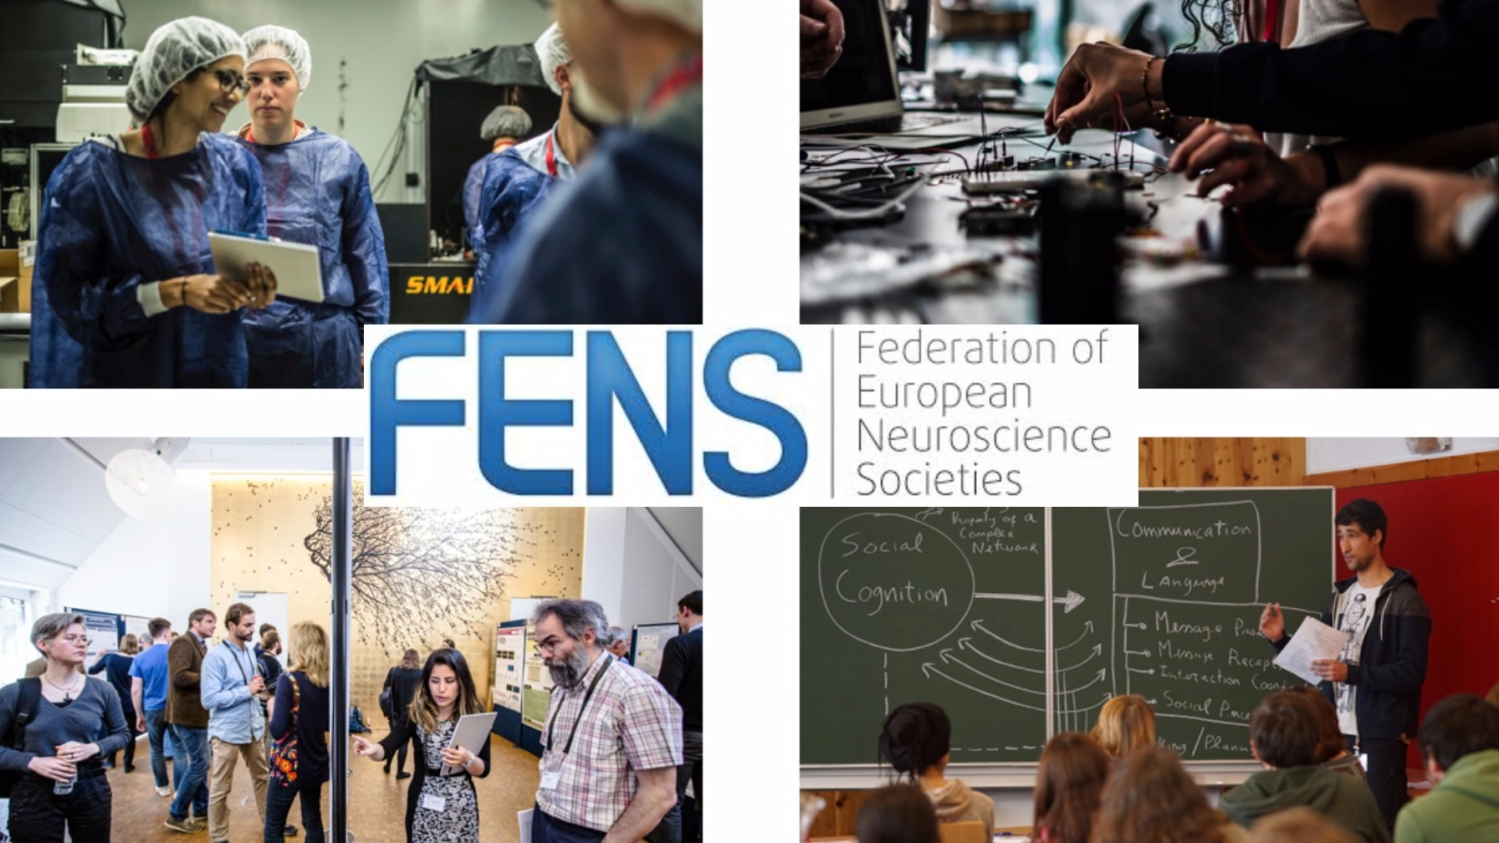 Why Educators Trained In Neuroscience >> Fens Higher Education And Training Opportunities Mediterranean